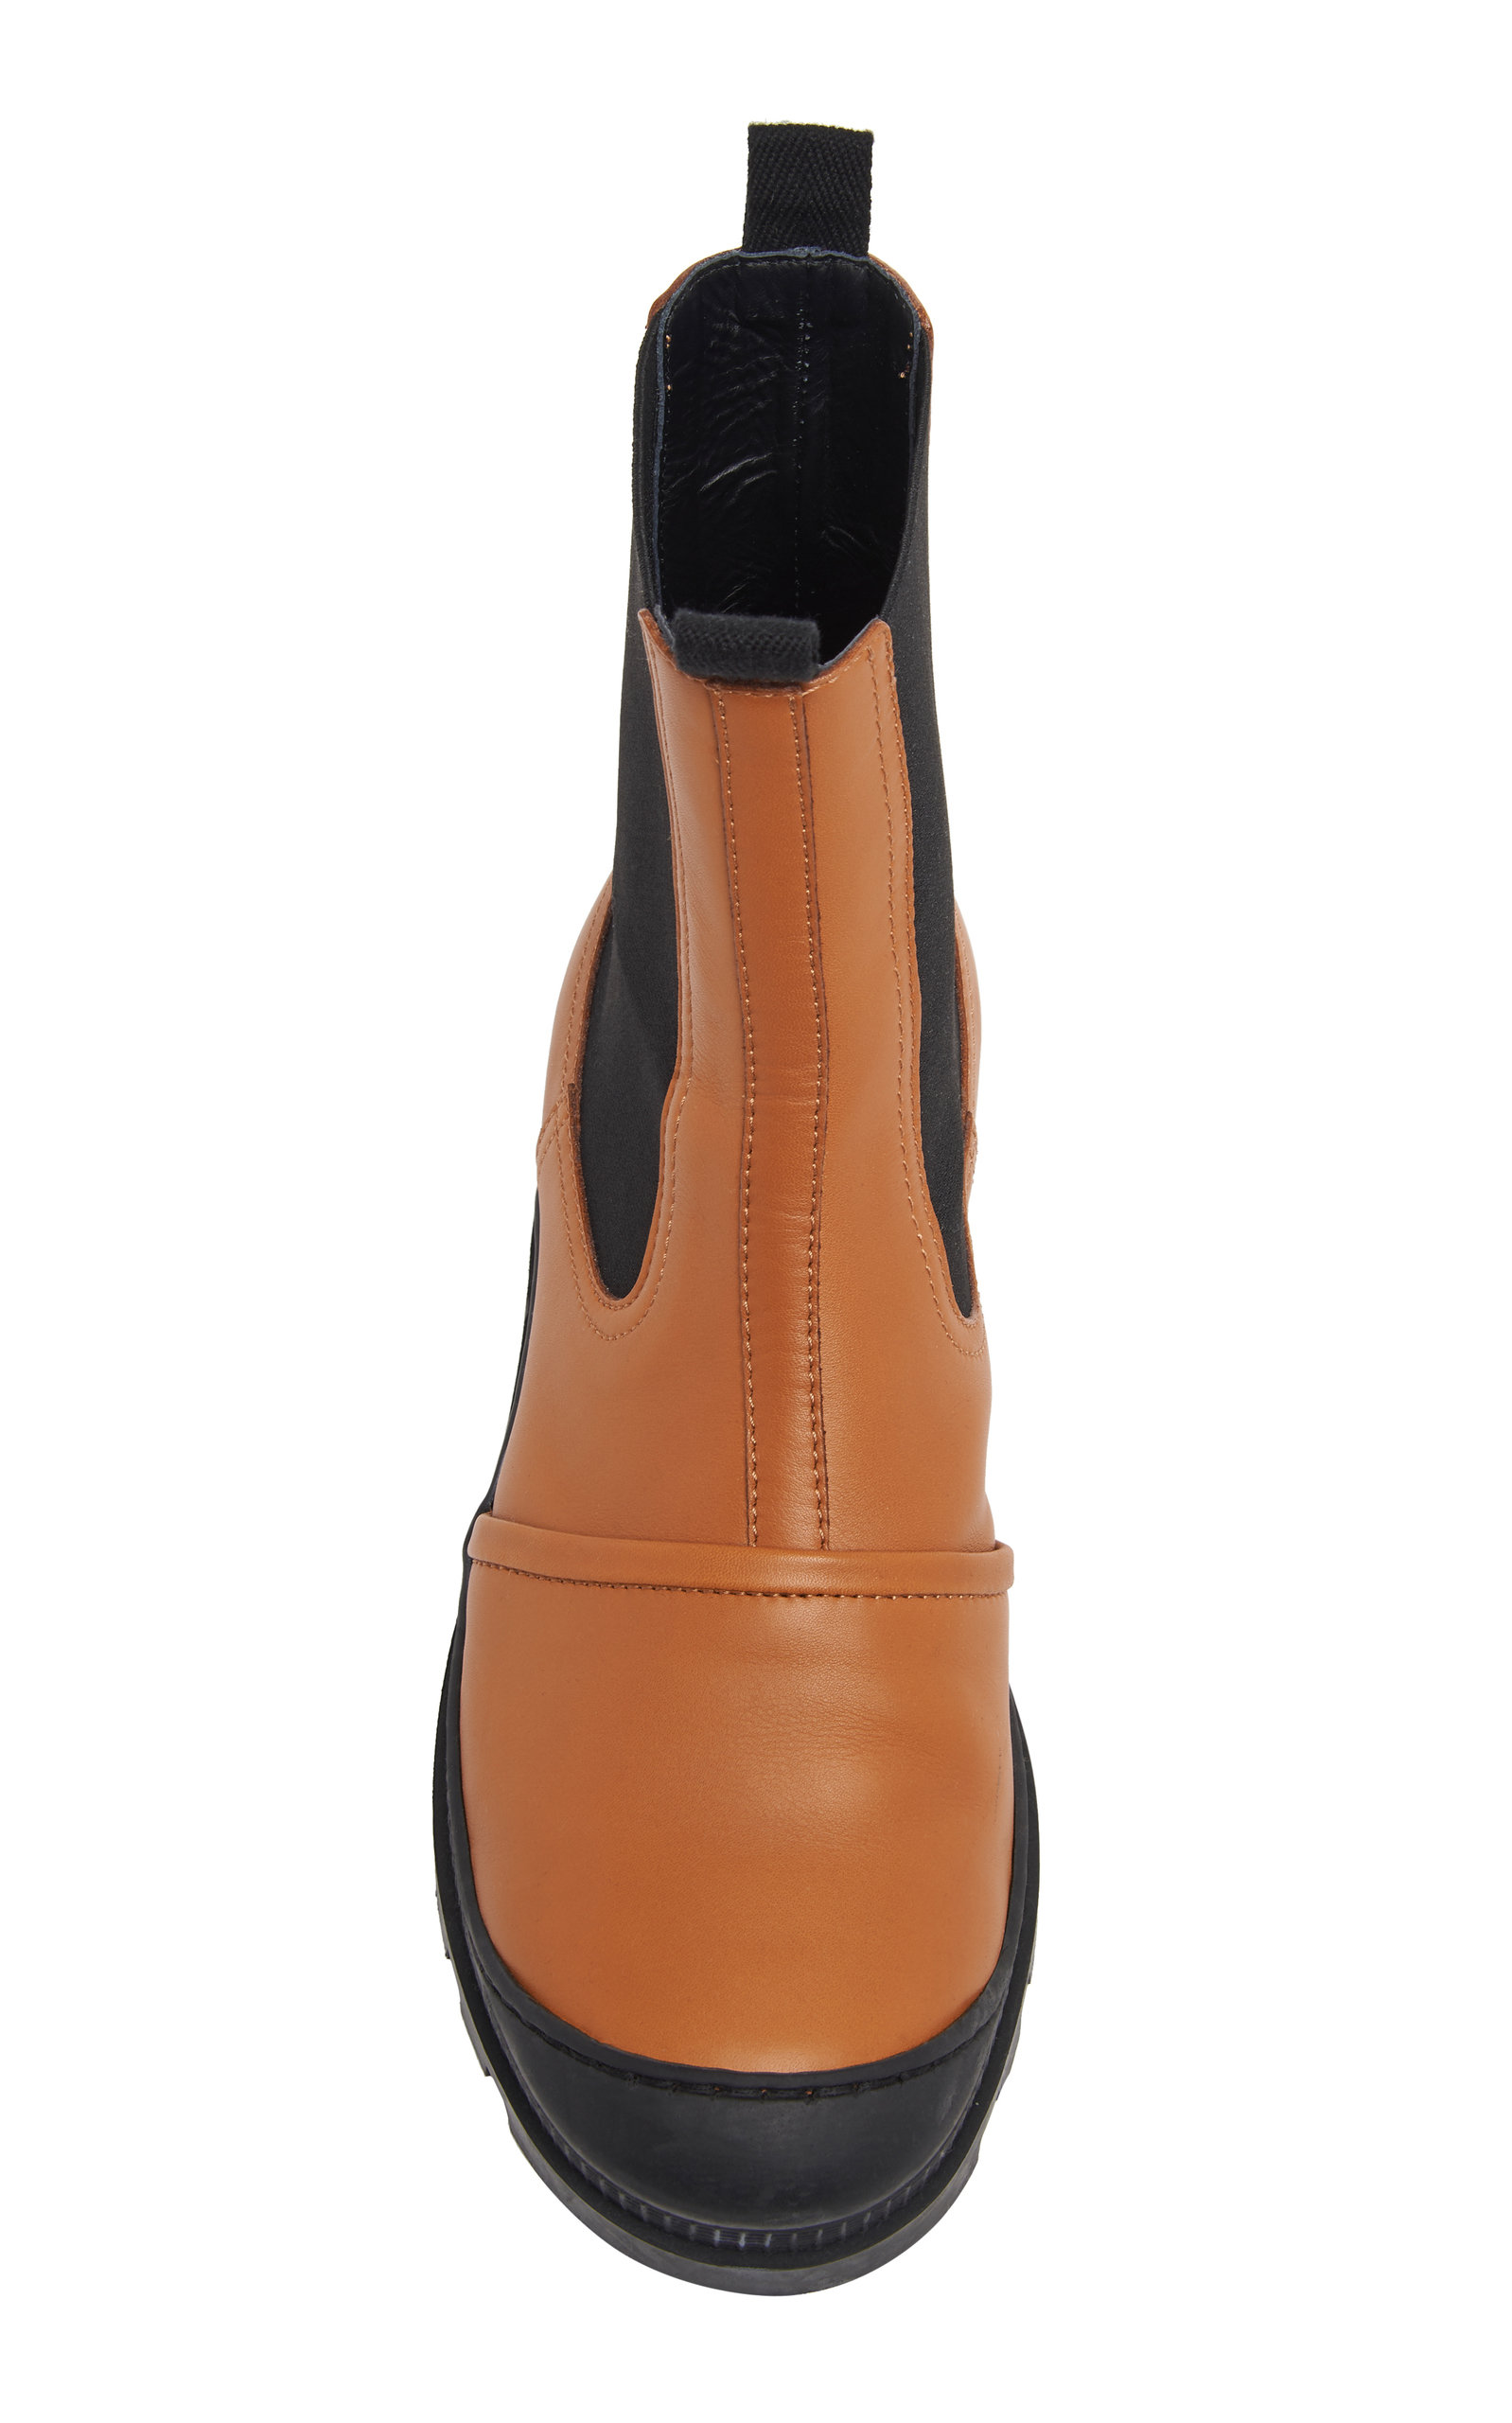 4e137264778d7 LoeweRubber-Paneled Leather Chelsea Boots. CLOSE. Loading. Loading